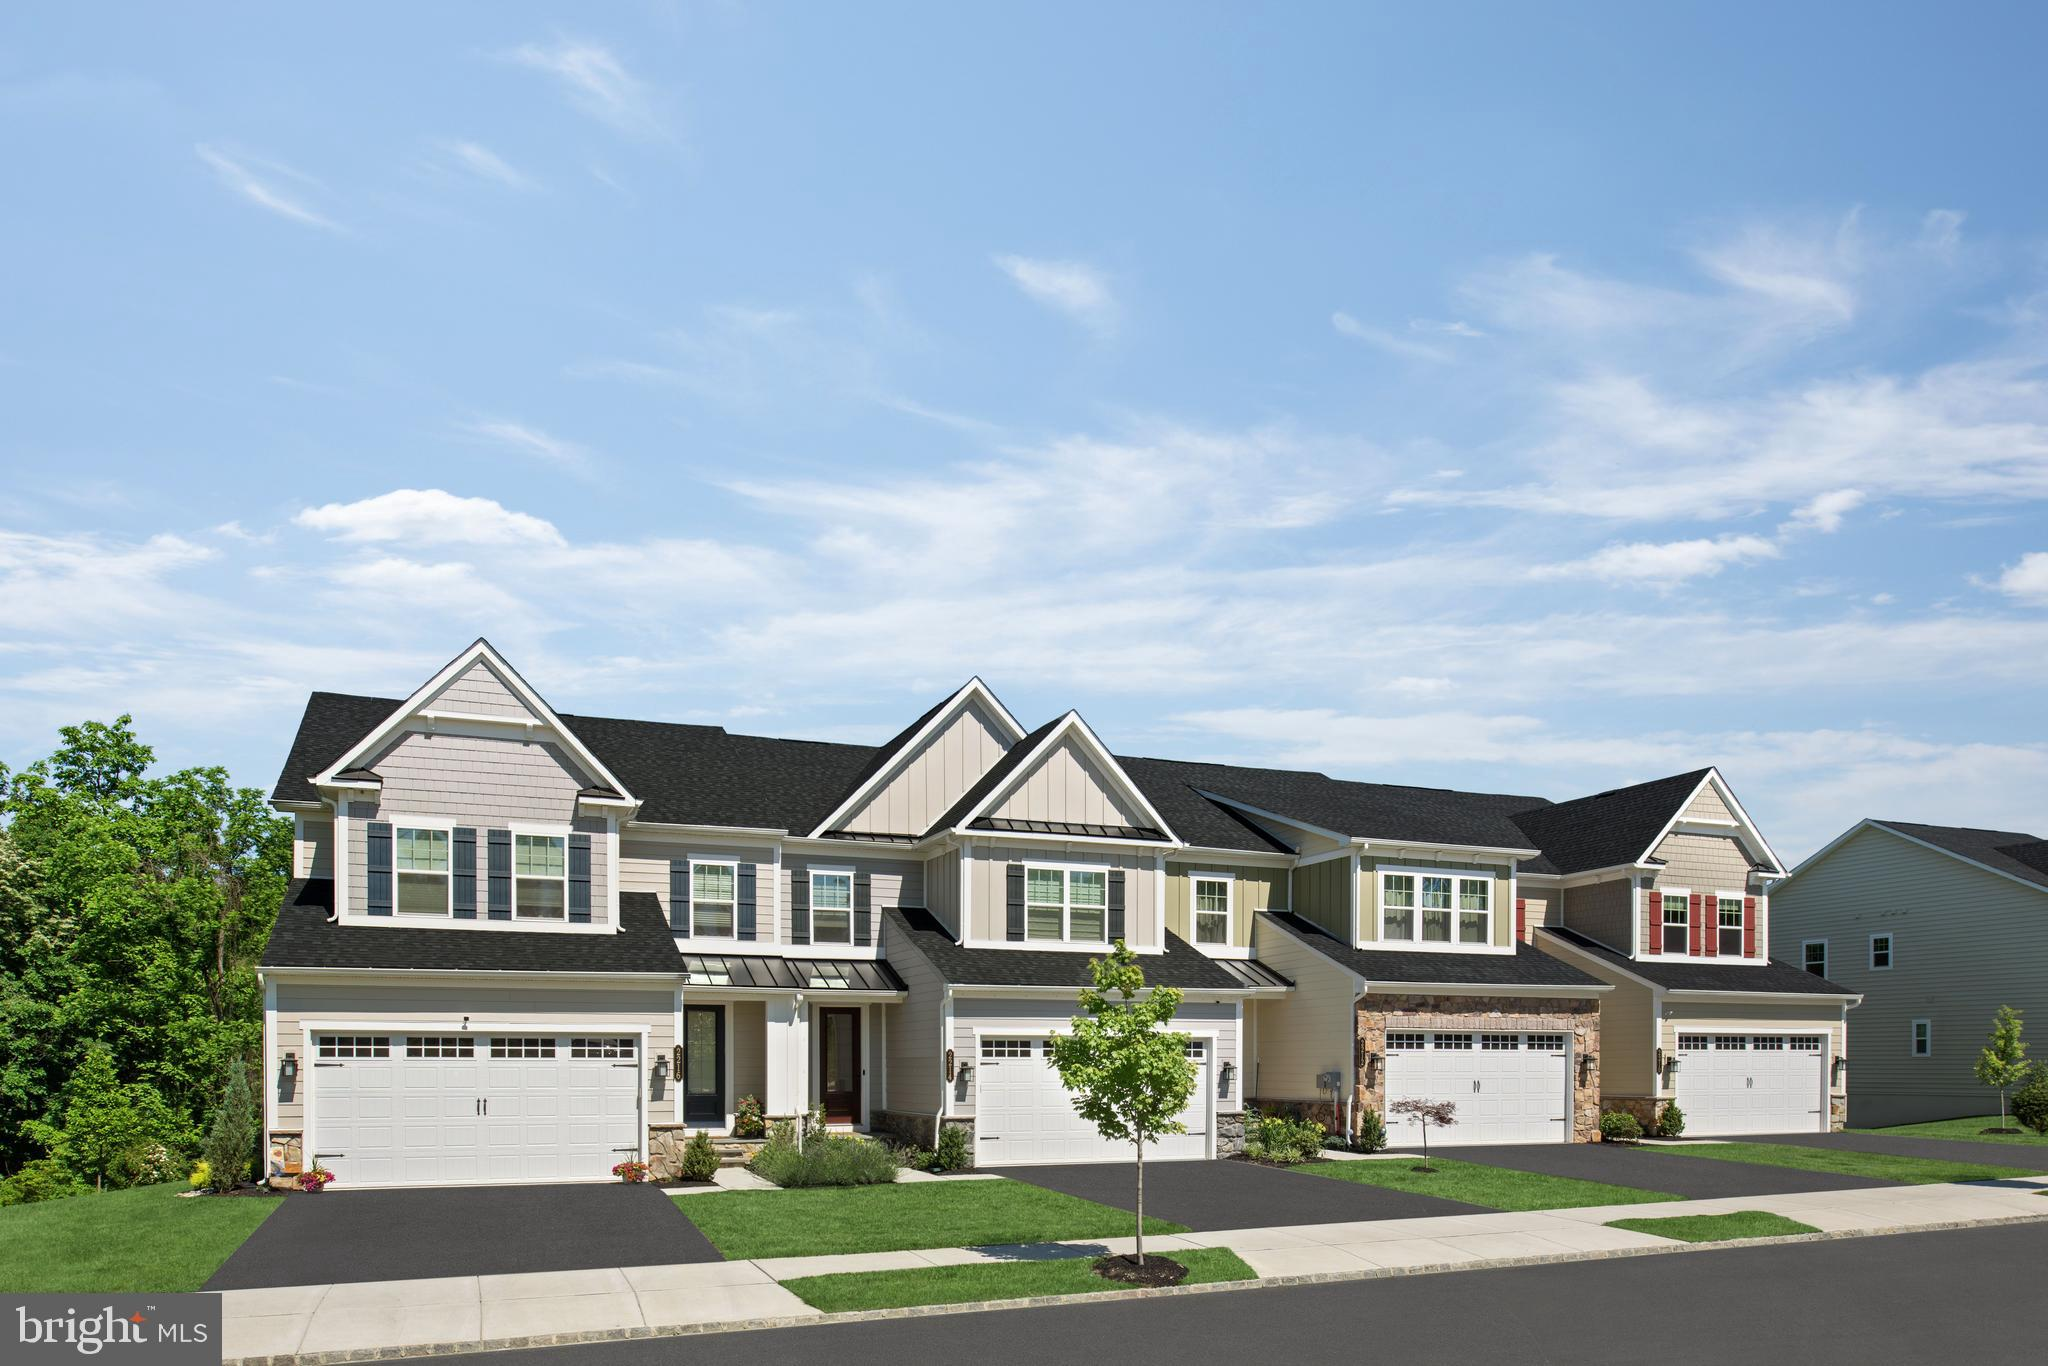 Luxury  townhomes in a spectacular estate setting near Rt. 100, 202, the 322 bypass, and West Chester Borough. You can have the best a single-family home has to offer with  large and inviting spaces, lots of light, plenty of closet space AND have the convenience and practicality of townhome living. NVHomes Northshire makes it easy. Enter to the first level and youll be greeted by the open and airy flex room, perfect for formal dining; or choose the study for work-from-home convenience. The kitchen is open to the great room and a casual dining space. A family arrival center and powder room is tucked away making clutter a thing of the past. Upstairs a loft makes a cozy private gathering space while still leaving plenty of room for large bedrooms, a hall bath and a full laundry room. The primary bedroom is a private retreat and boasts a spa-like primary bath and huge walk-in closet with mirror. To top it off, your included finished basement and full bath offers even more space and versatility for entertaining, fitness or relaxation. Youre going to love the Northshire at Greystone!